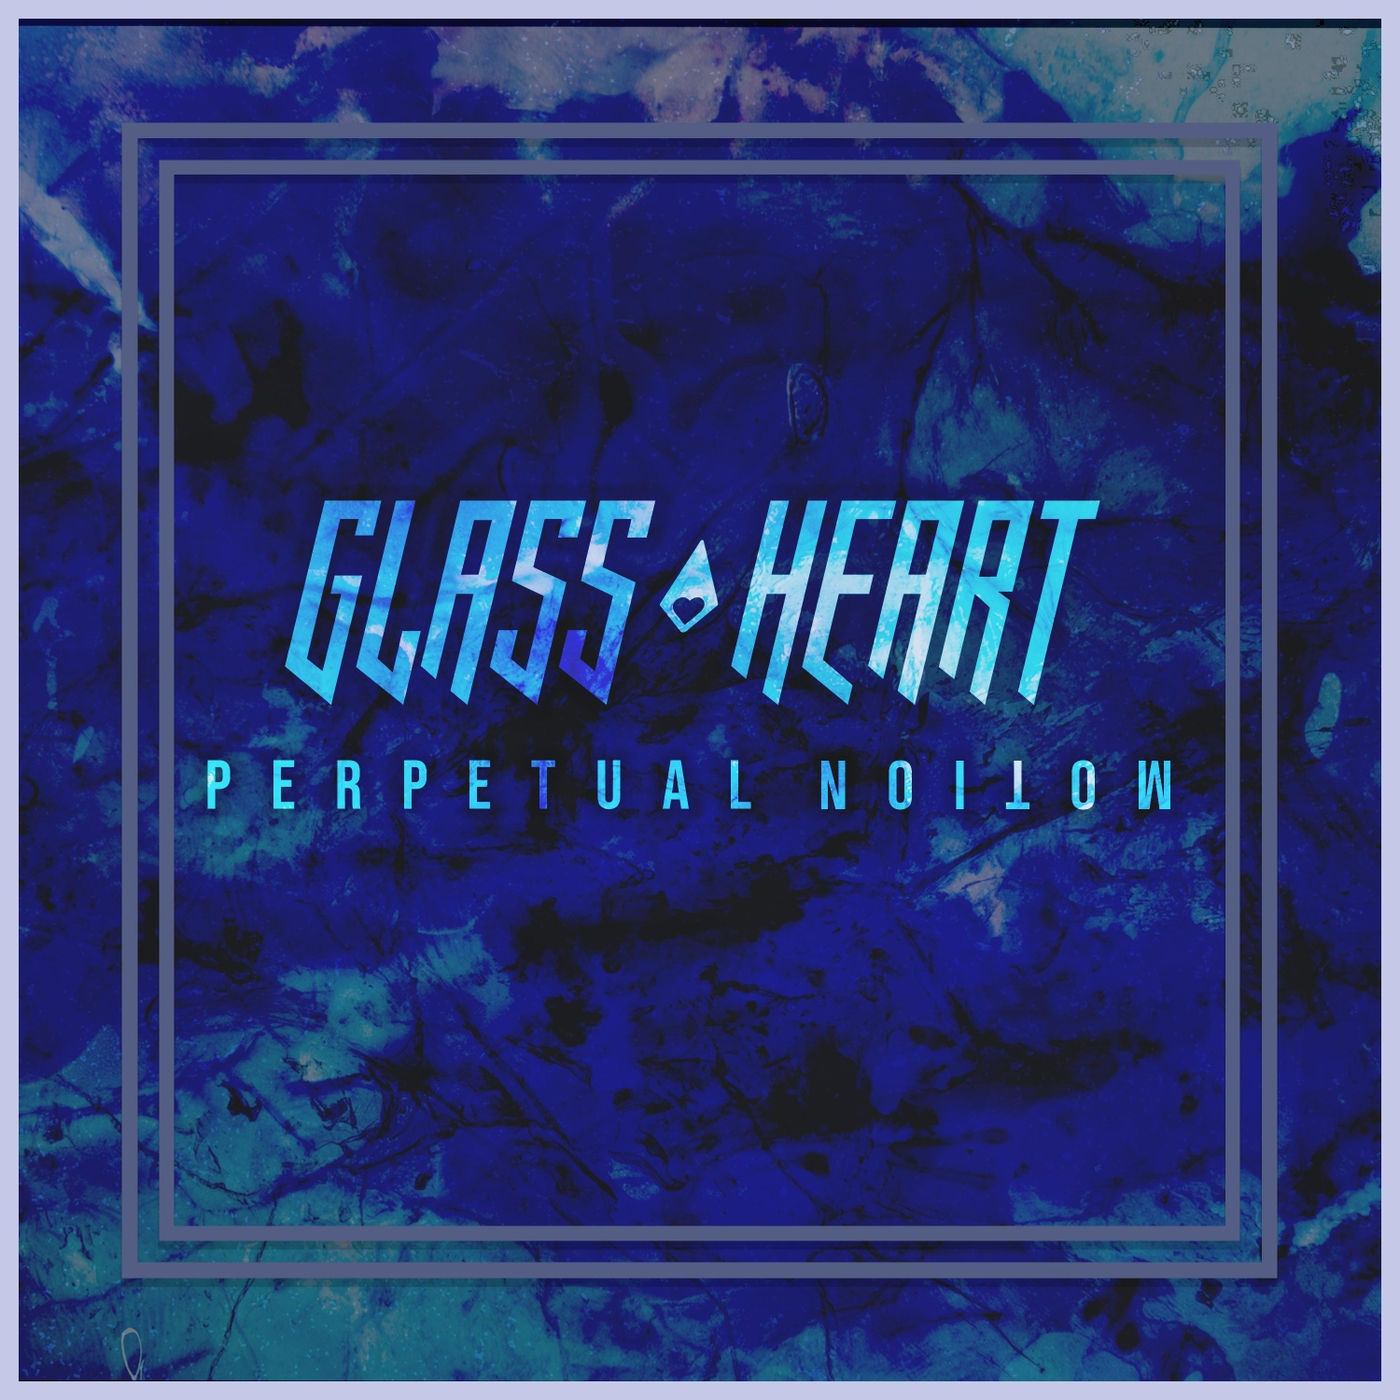 Glass Heart - Perpetual Motion [single] (2020)